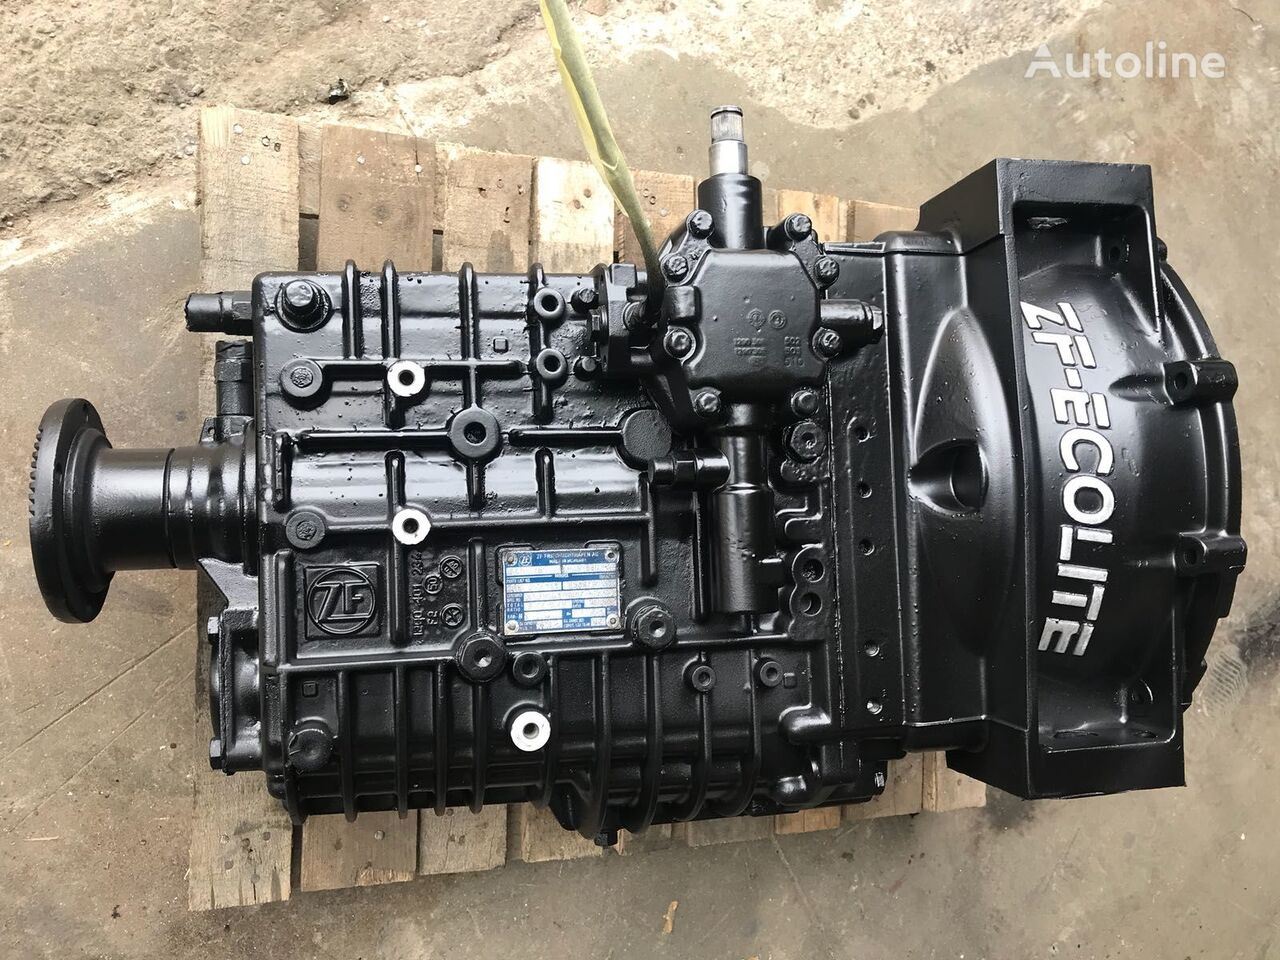 ZF Ecolite 6S850 gearbox for bus